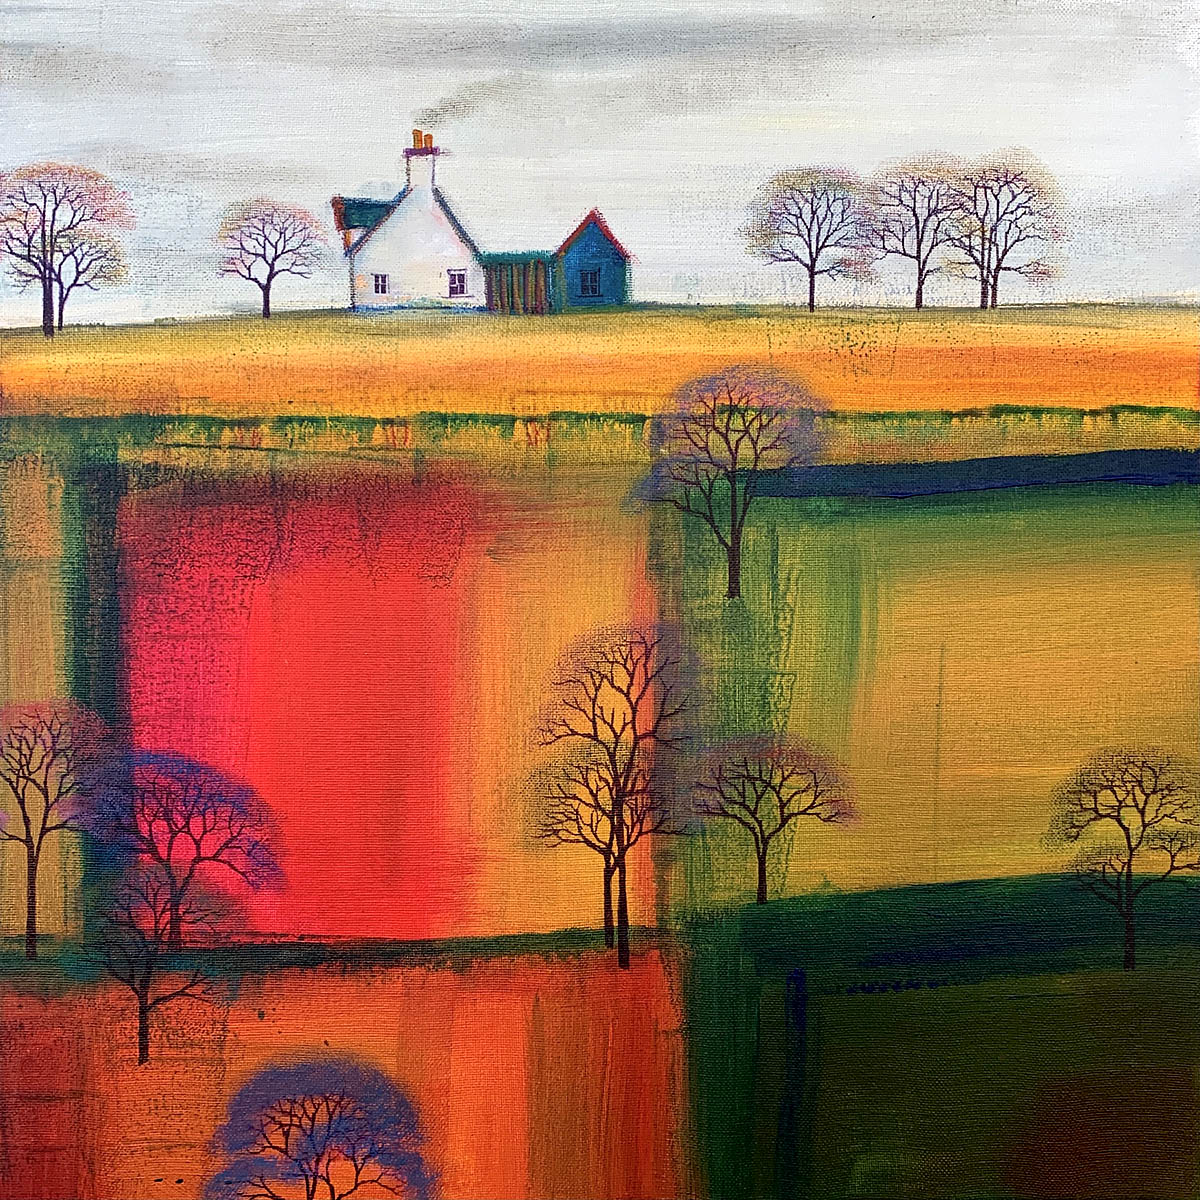 Erraid Gaskell, 'A Mild Spring Bloom', acrylic and mixed media on box canvas